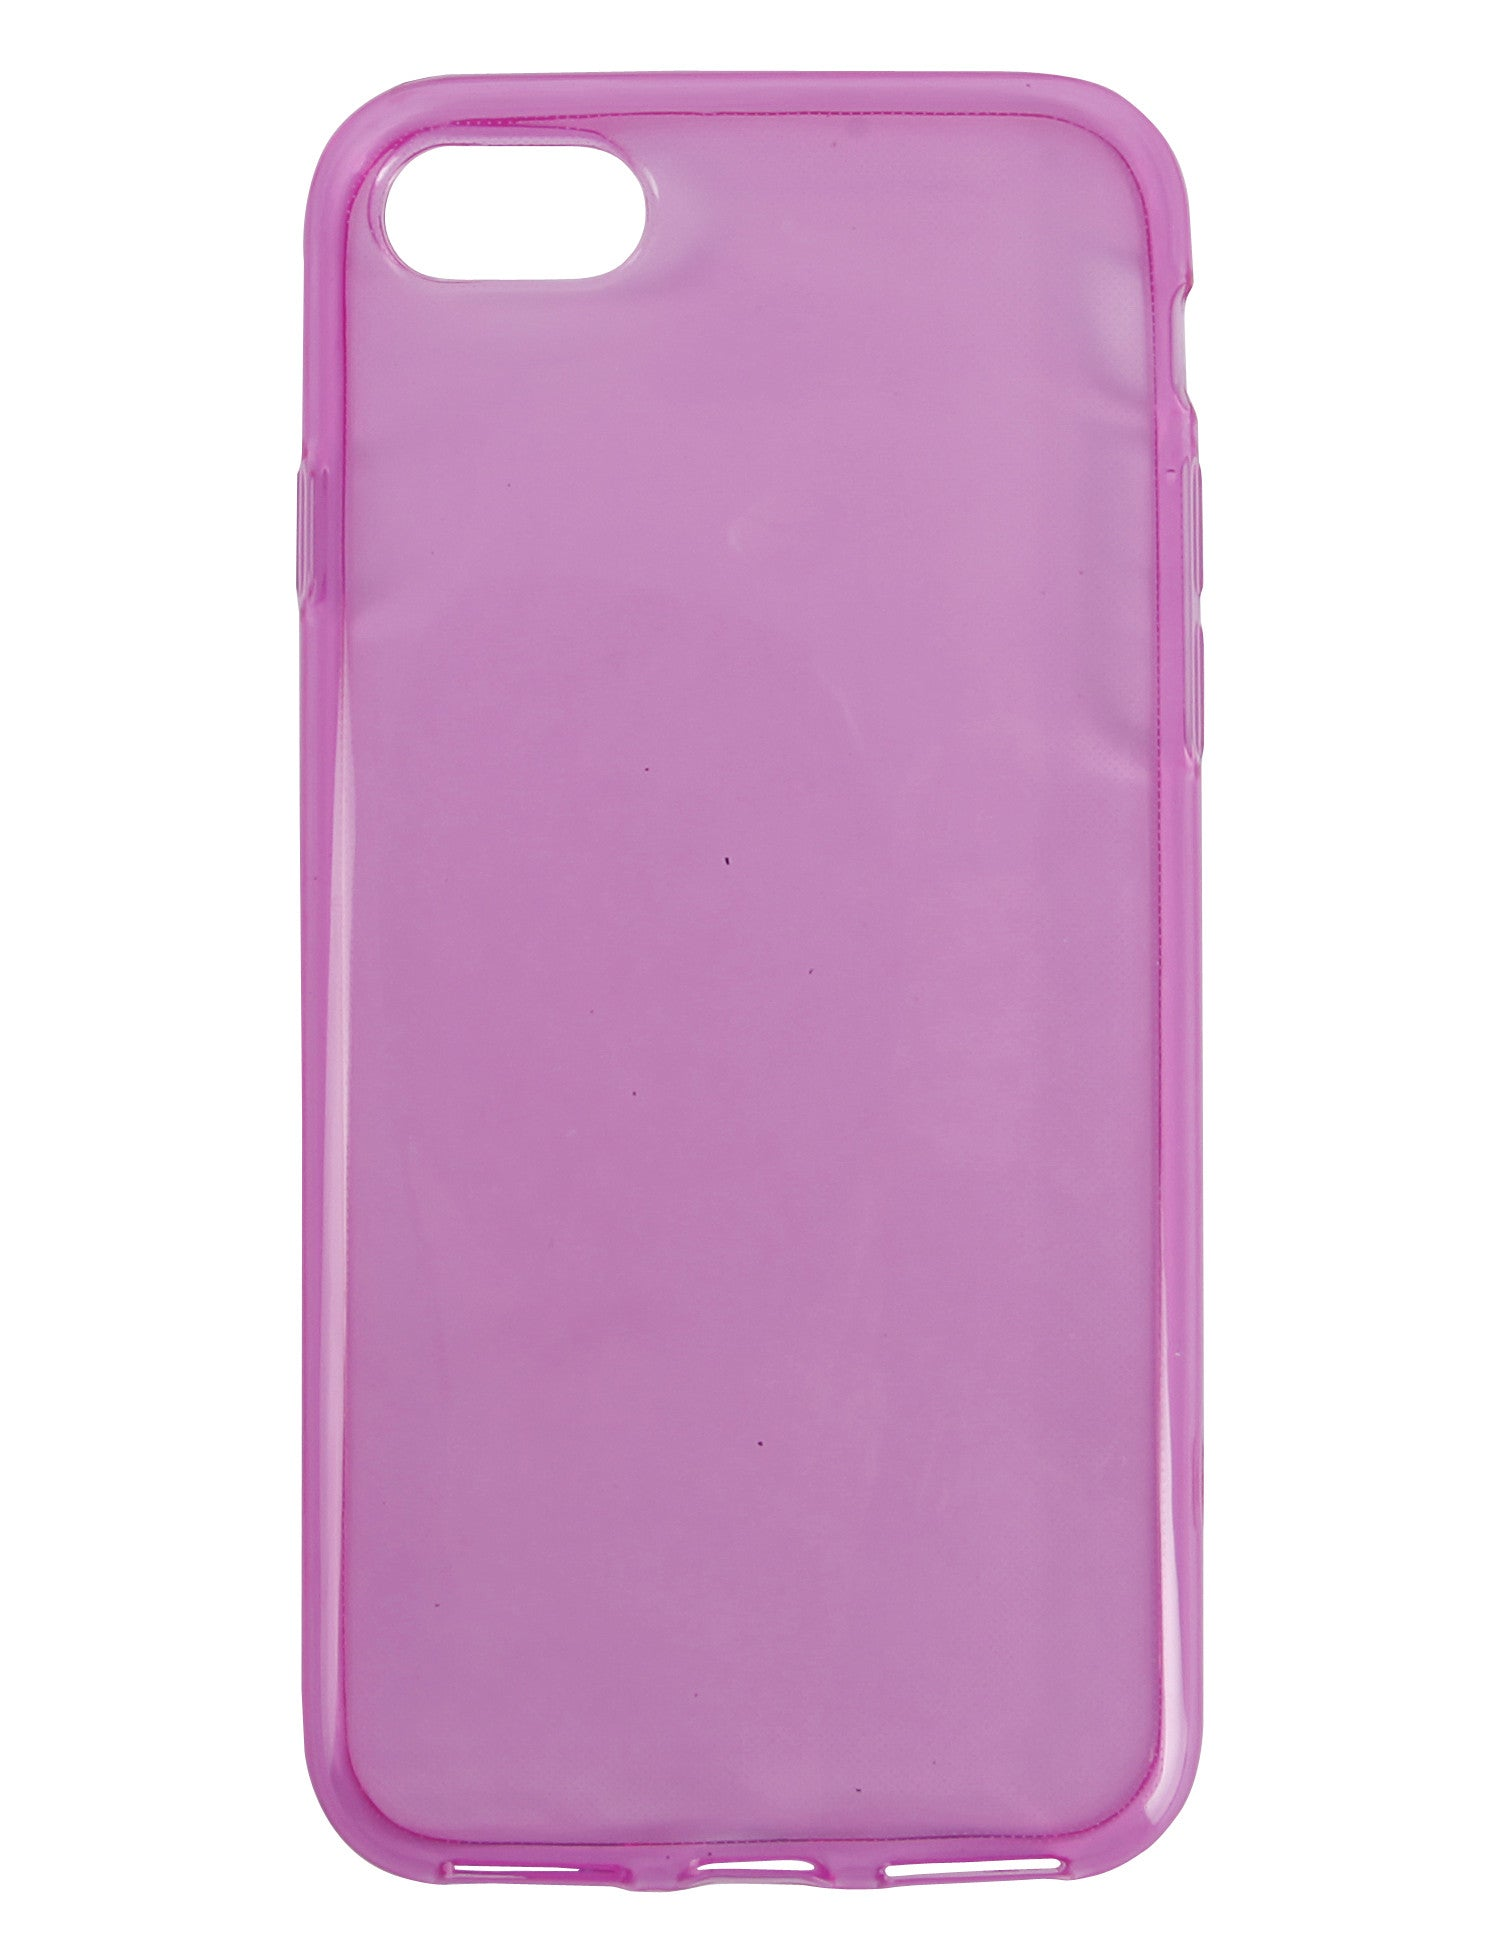 Image of iPhone 7 TPU case 716001-PK Pink